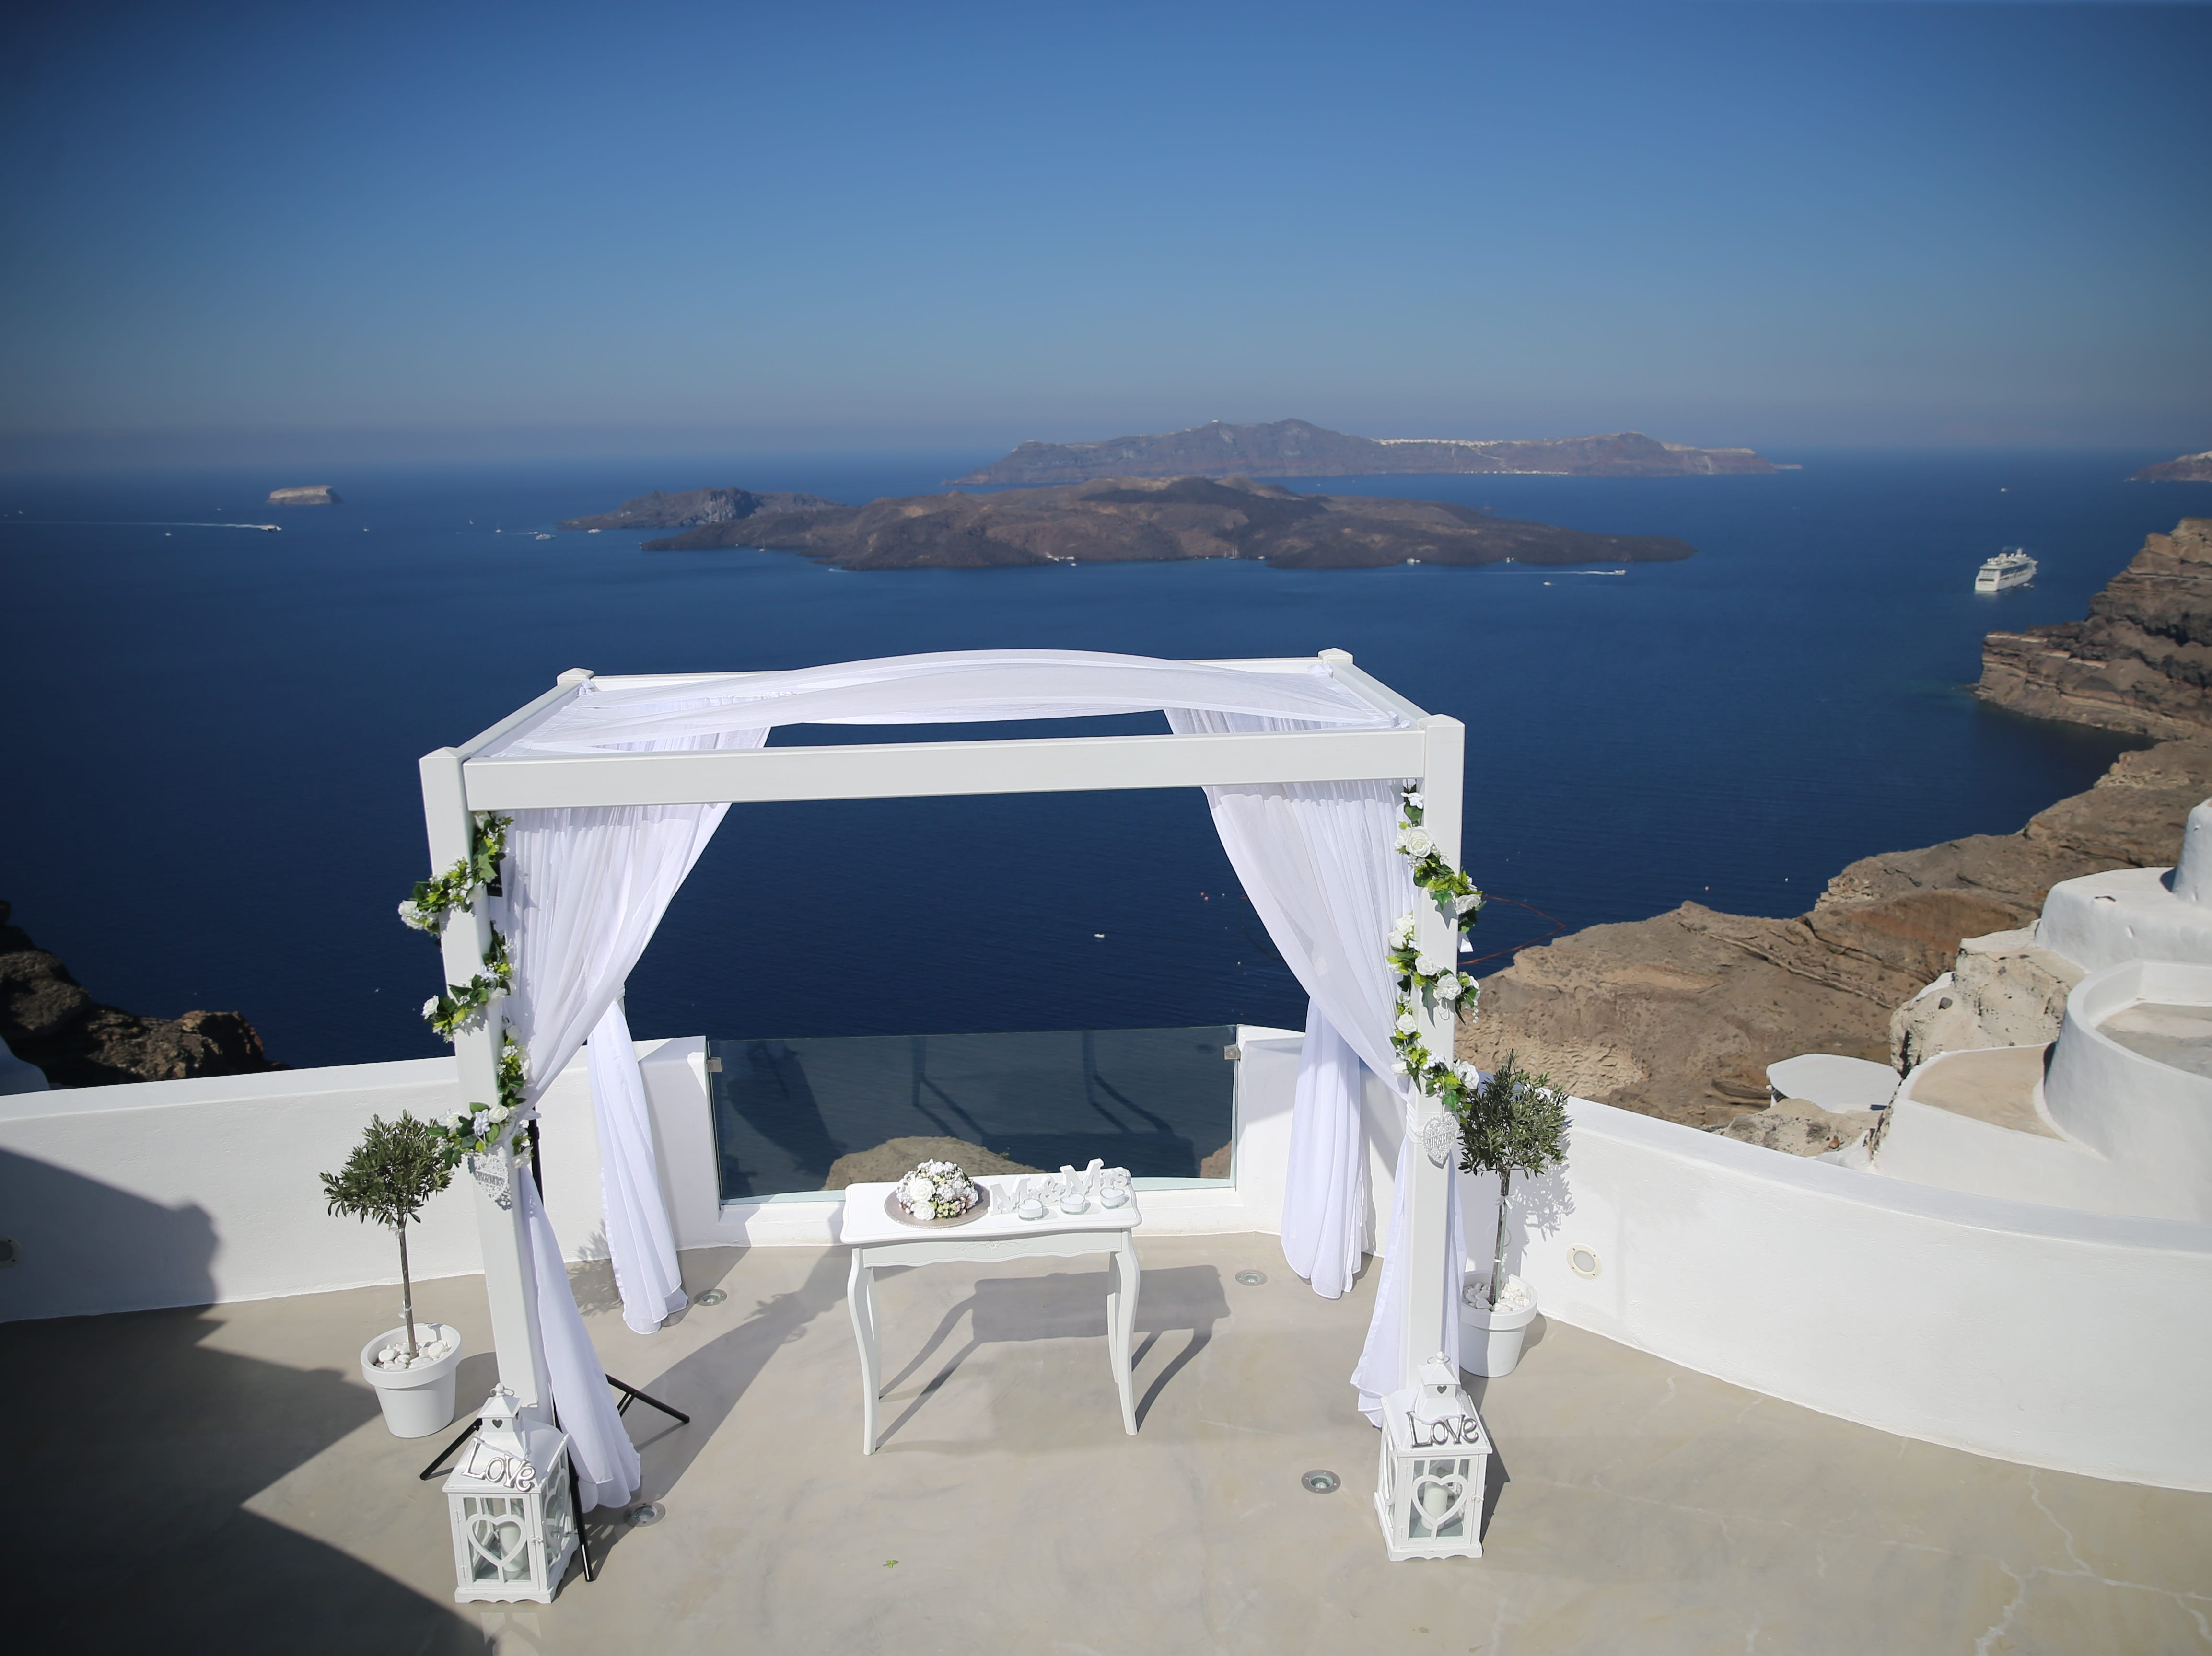 Naples travel advisor Pamela Price planned her own destination wedding on the Grecian island of Santorini in September. She married American Airlines pilot David Fisher. They had a couple of their best friends serve as witnesses.